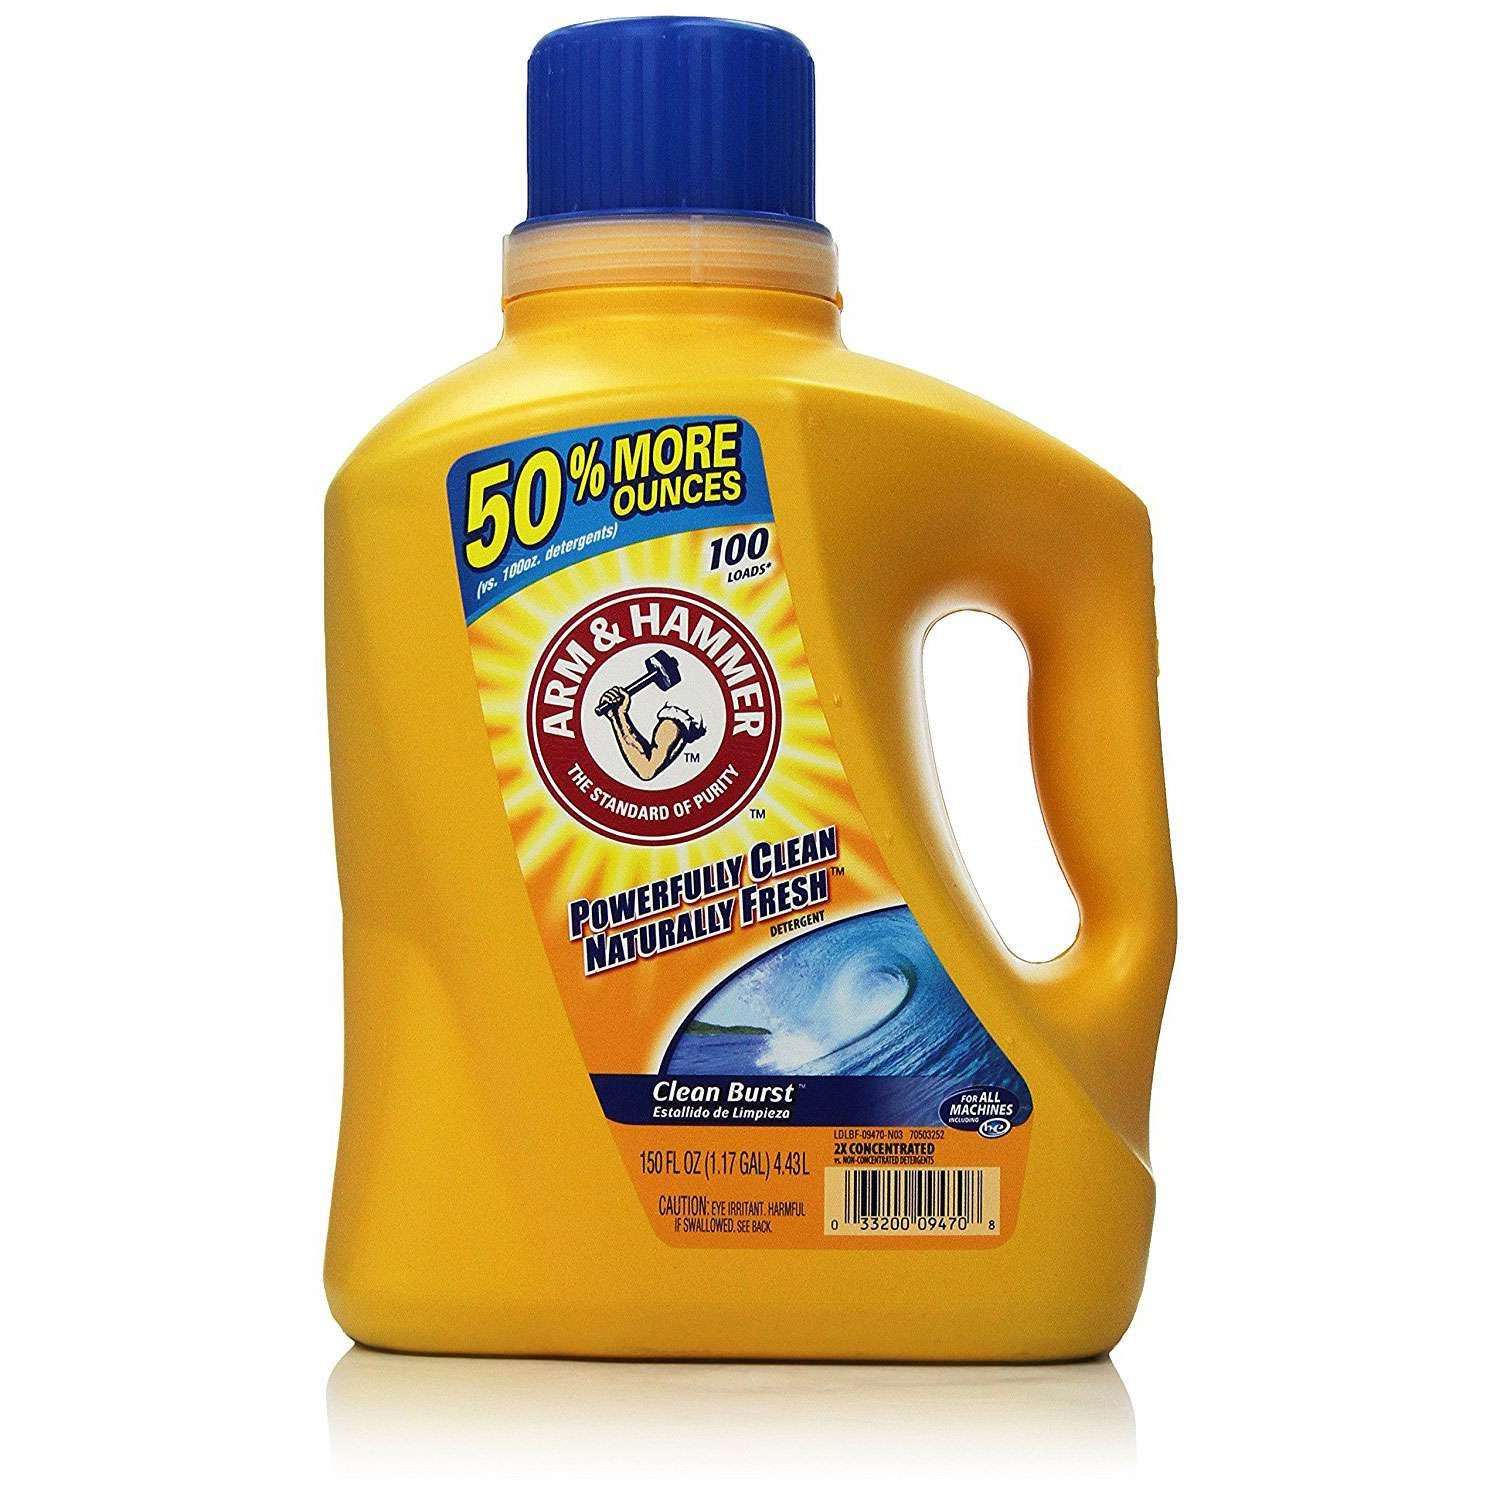 The 10 Best Laundry Detergents Of 2020 Laundry Detergent Detergents Best Laundry Detergent